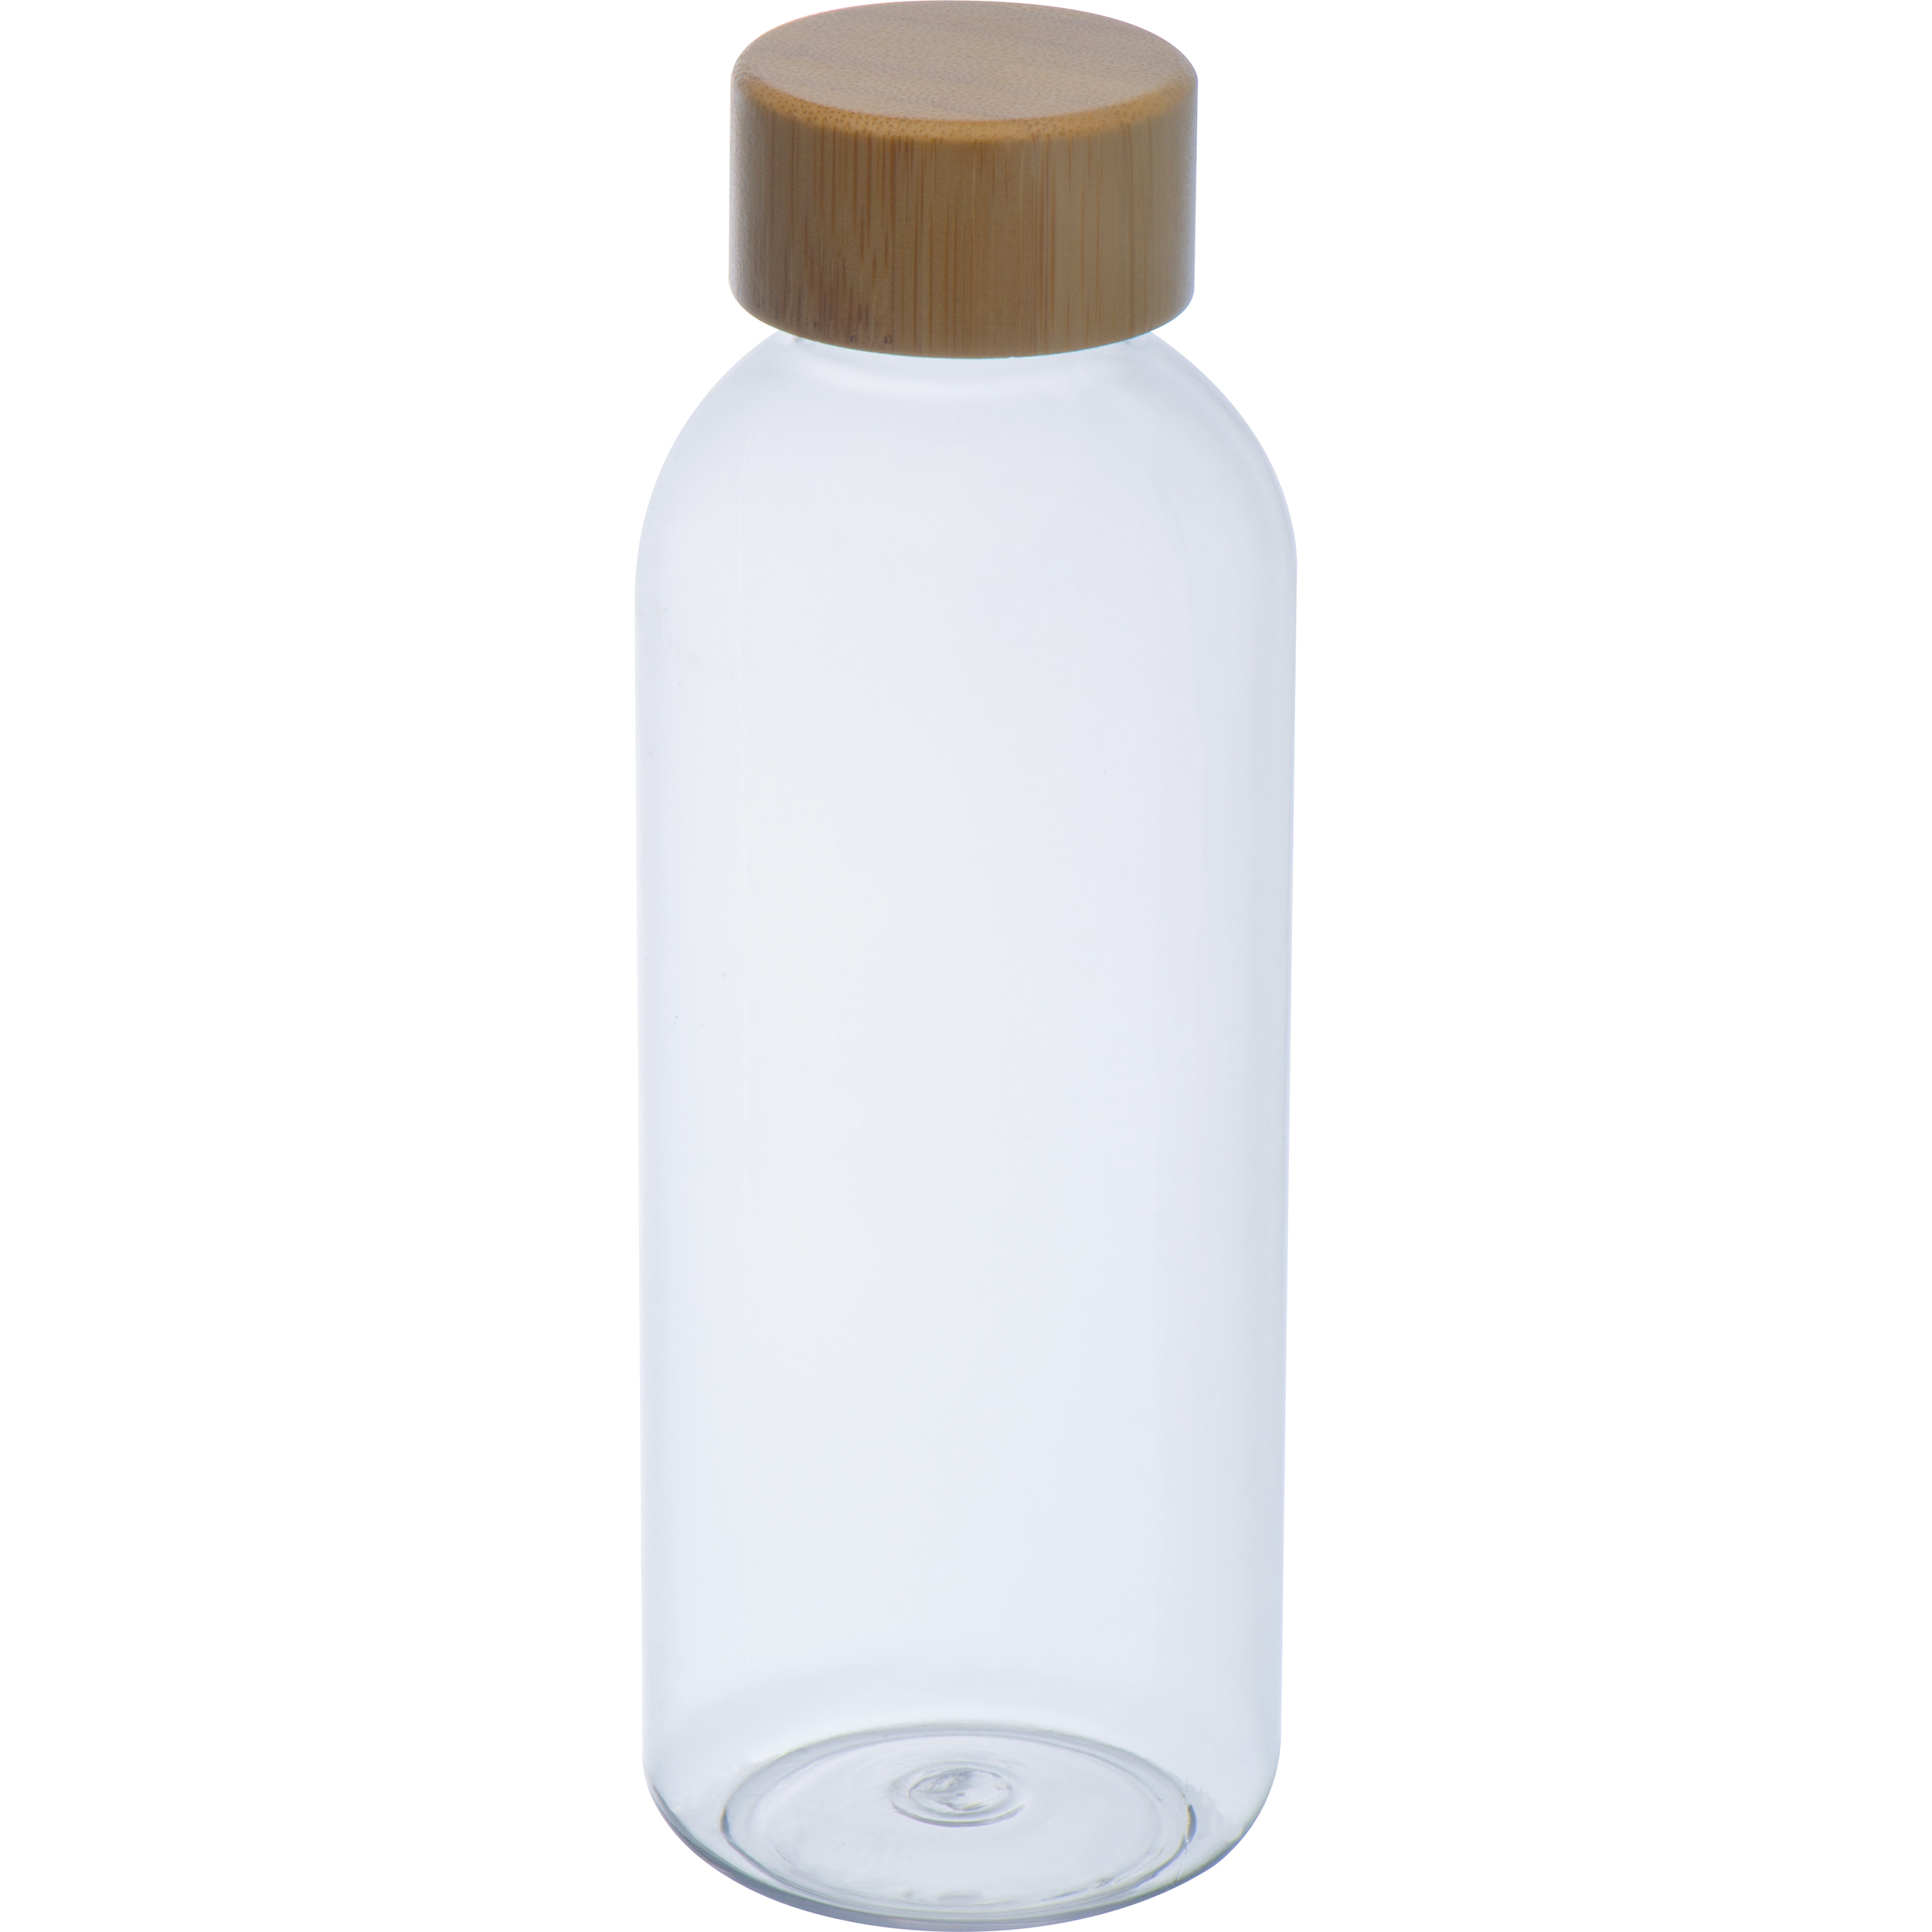 RPET bottle with bamboo lod